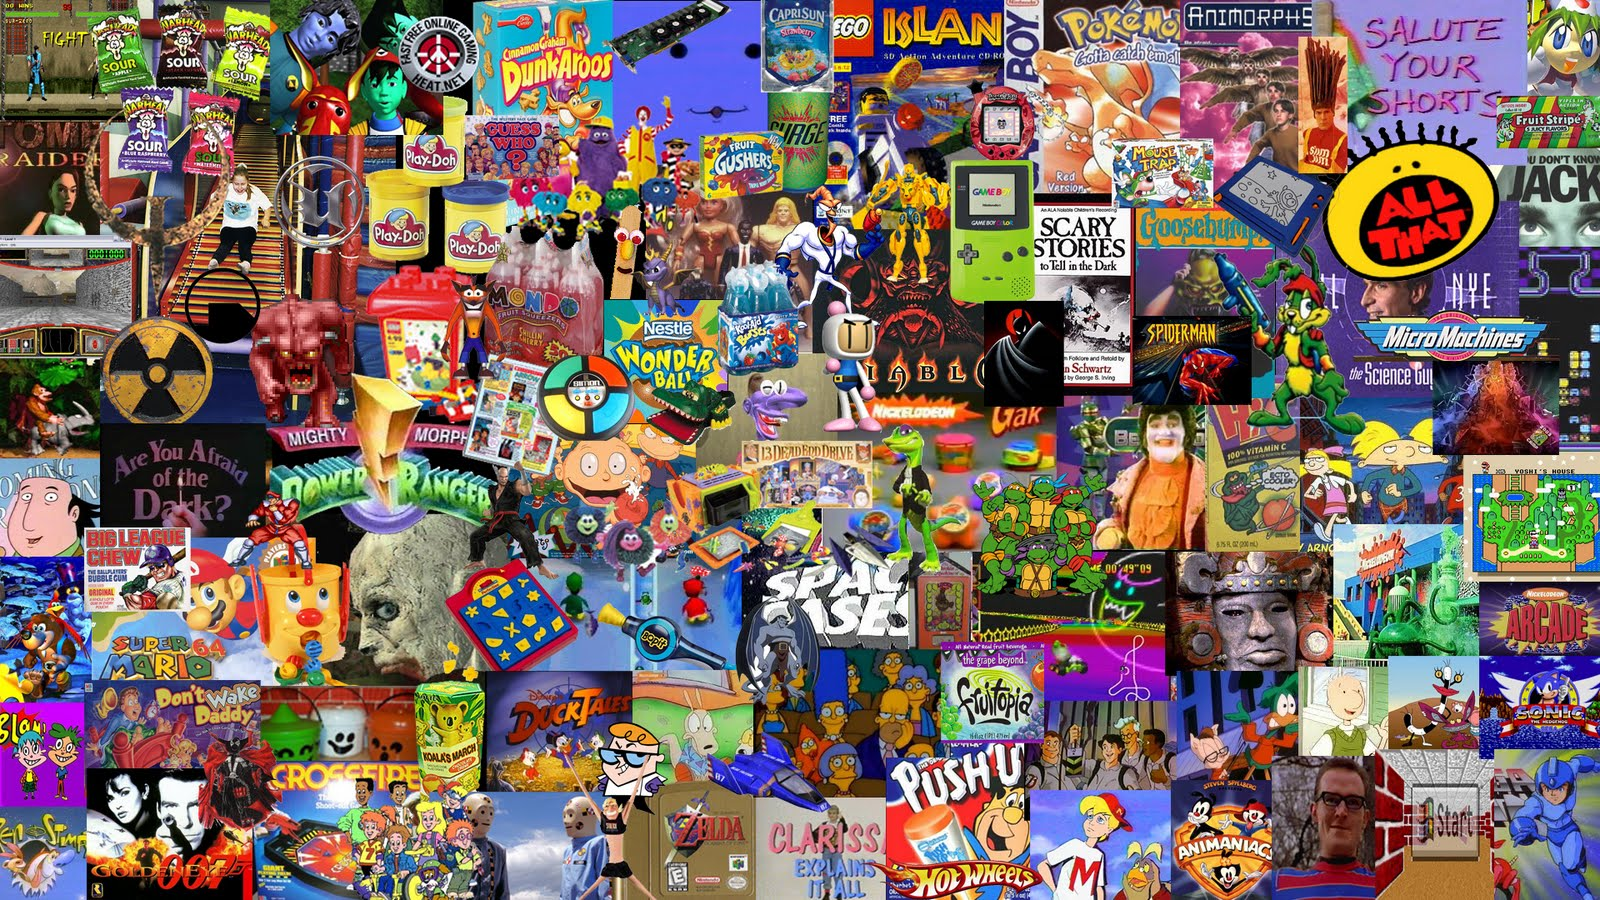 90s Computer Wallpaper Use as a wallpaper a year 1600x900